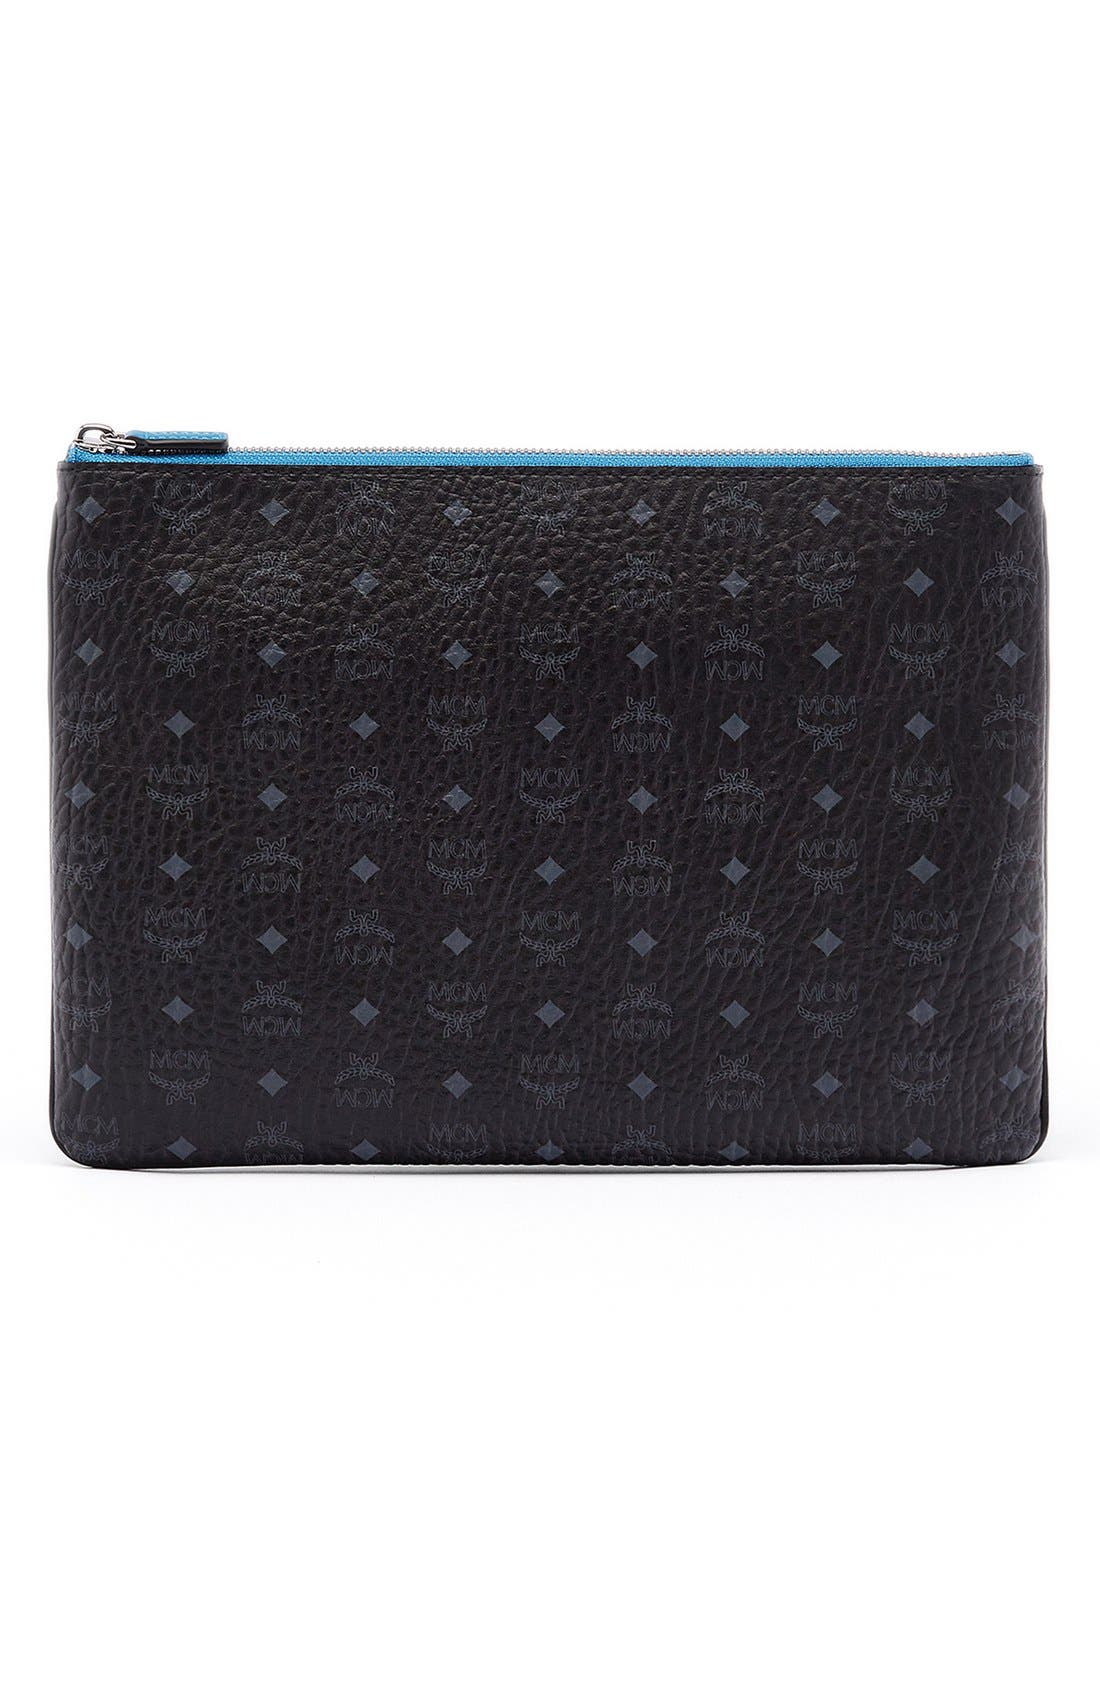 Alternate Image 1 Selected - MCM Heritage Convertible Coated Canvas Zip Pouch